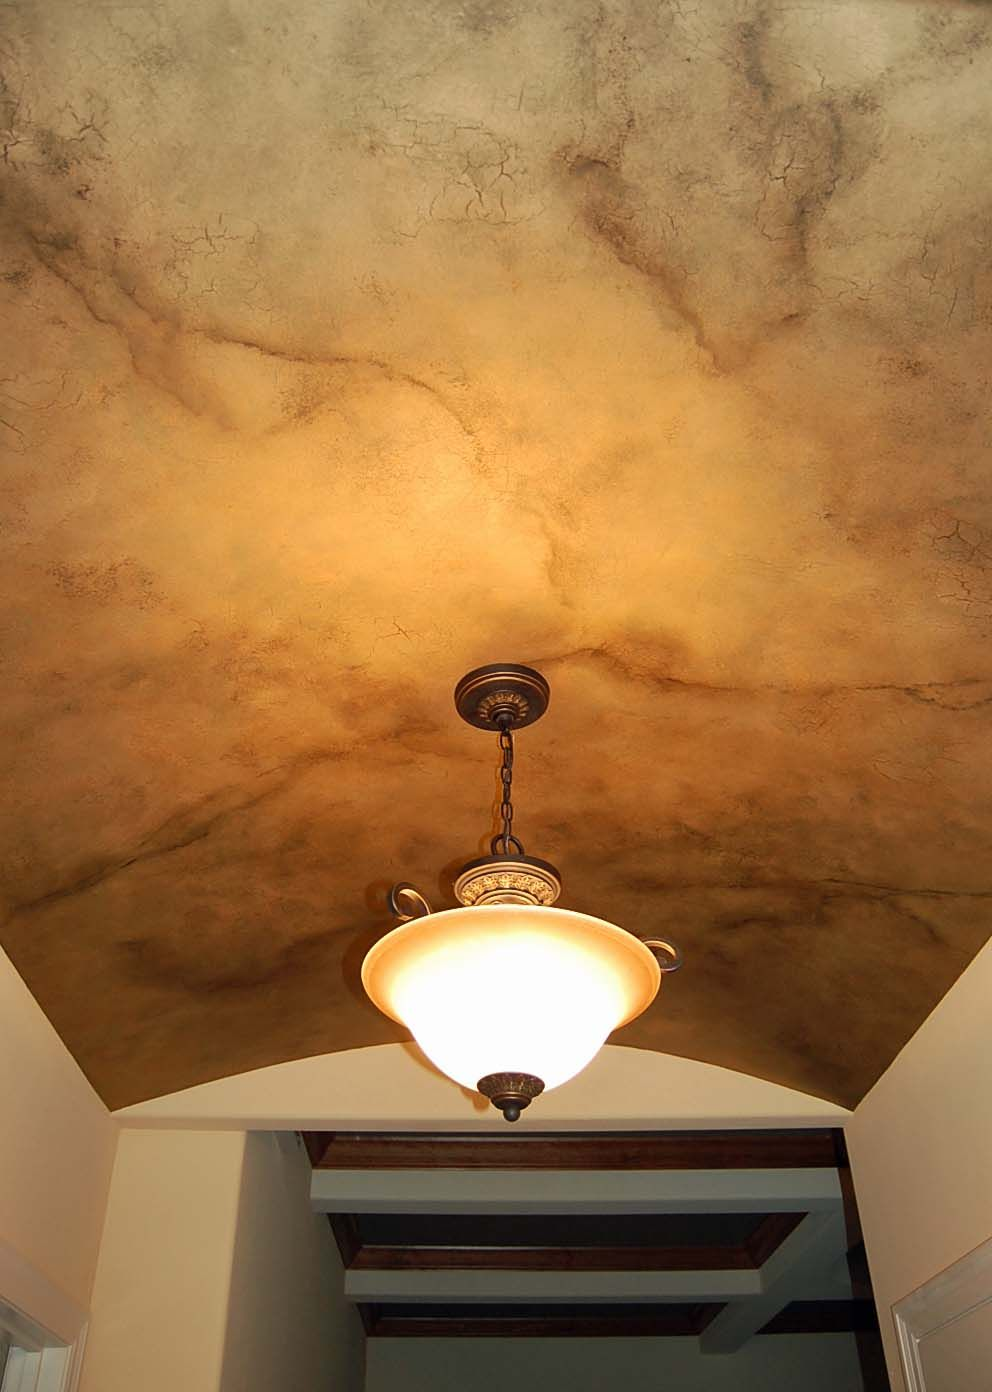 Metallic Crackle Faux Finish On Ceiling Faux Walls